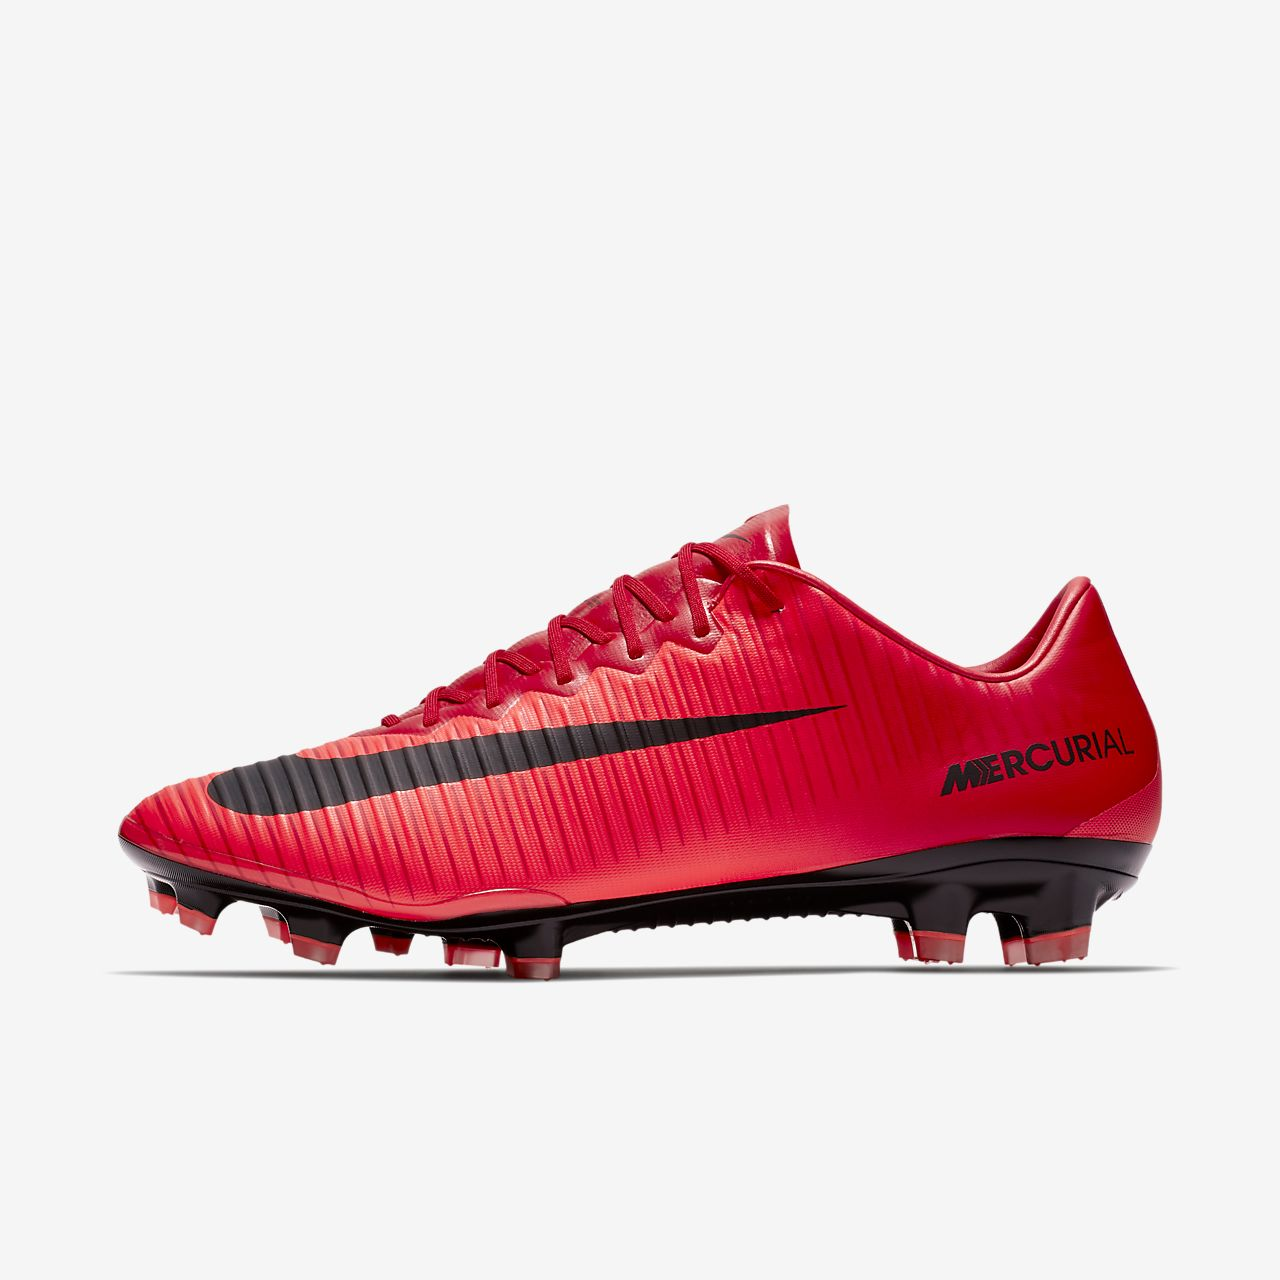 ... Nike Mercurial Vapor XI Firm-Ground Soccer Cleat